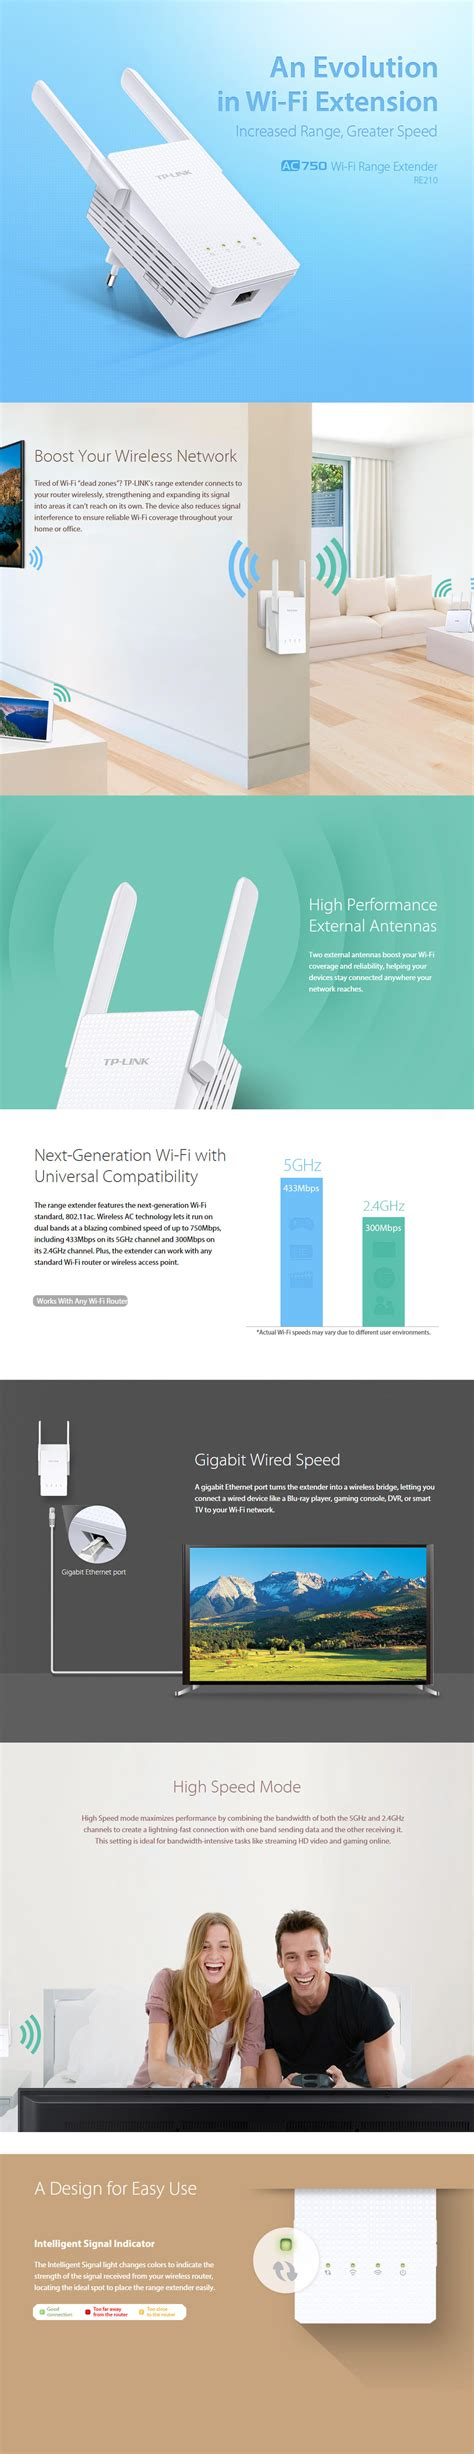 Tp Link Re210 Ac750 Dual Band Wireless Wall Plugged Range Extender tp link re210 ac750 wi fi range extender ebay